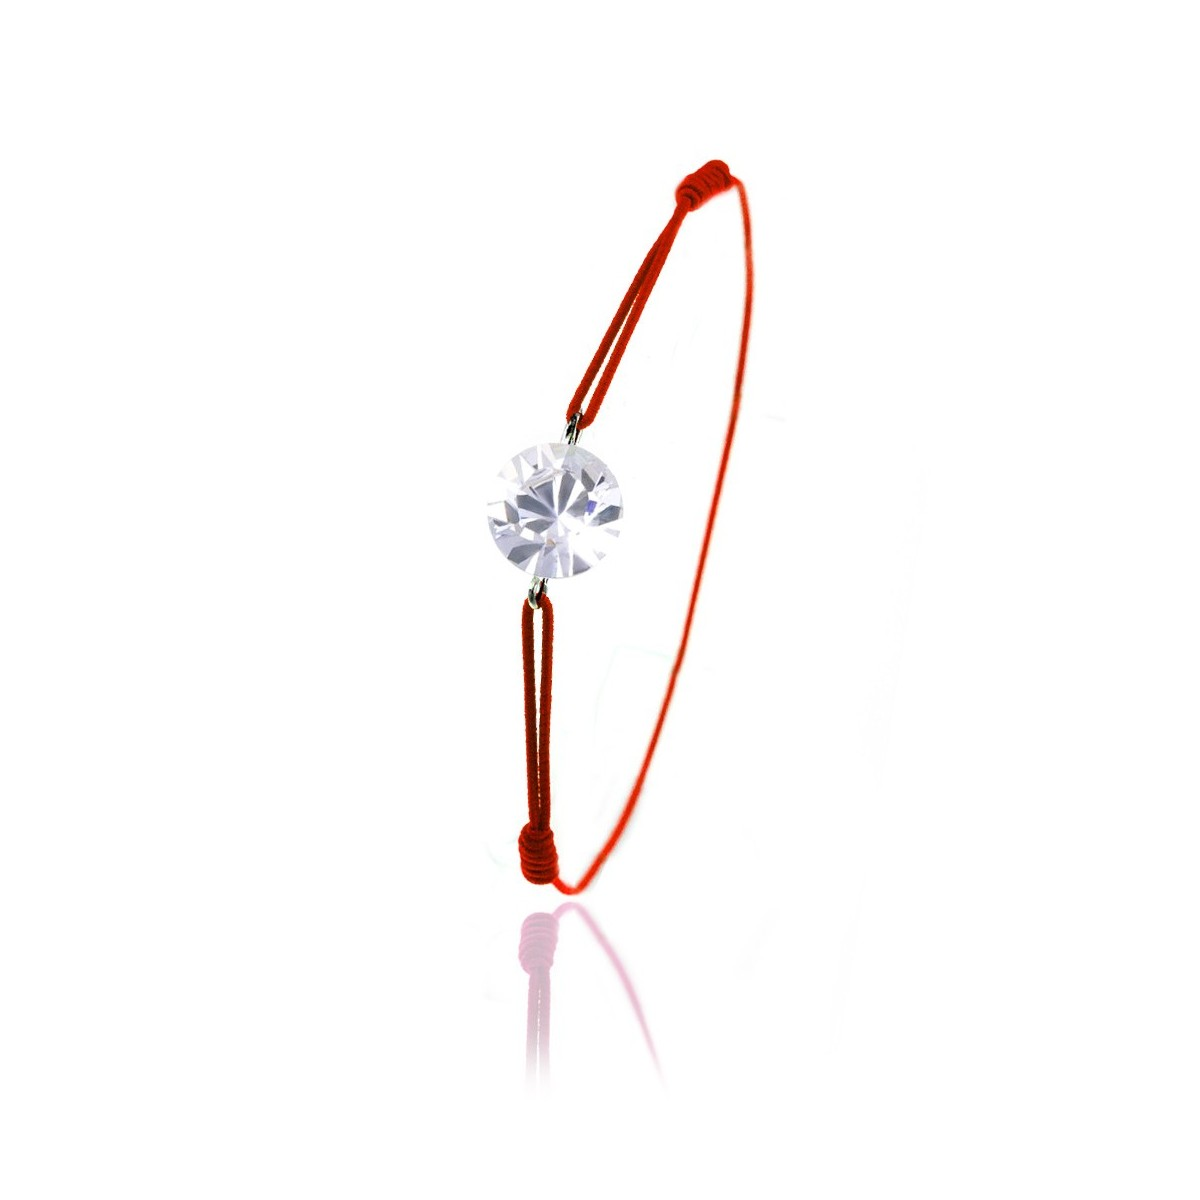 Bracelet élastique rouge So Charm made with Crystal from Swarovski